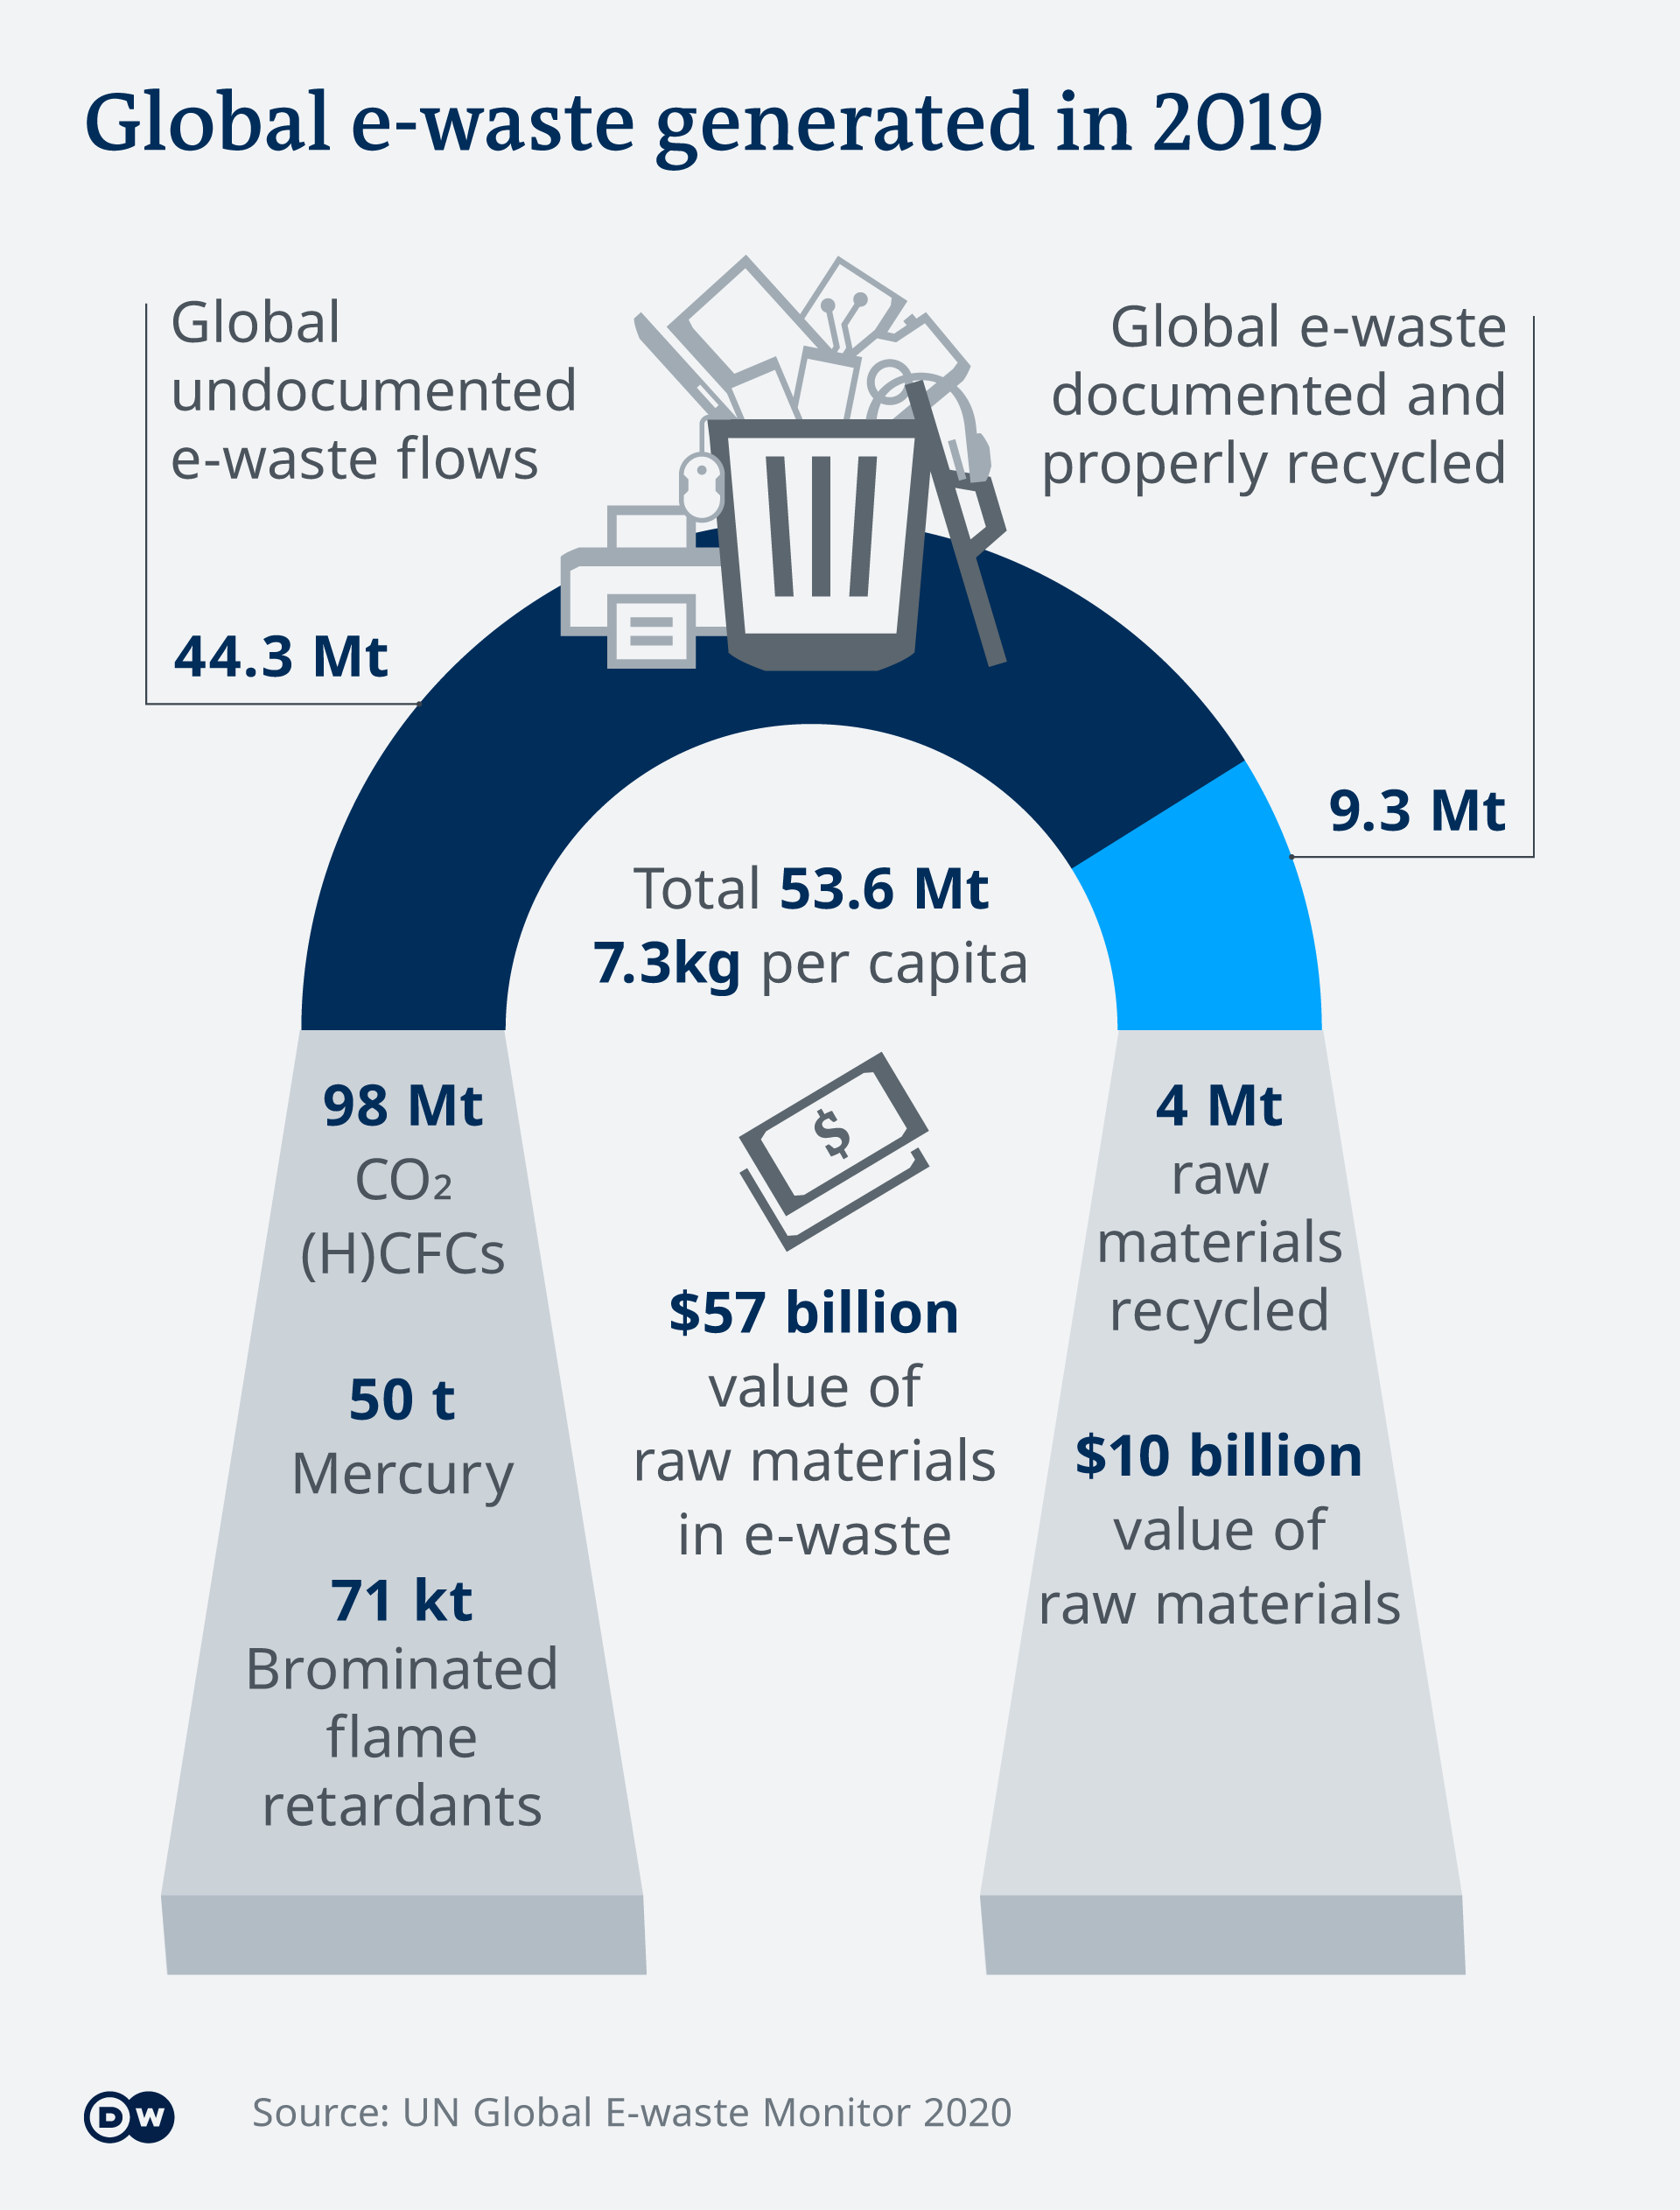 An infographic on global e-waste generated in 2019